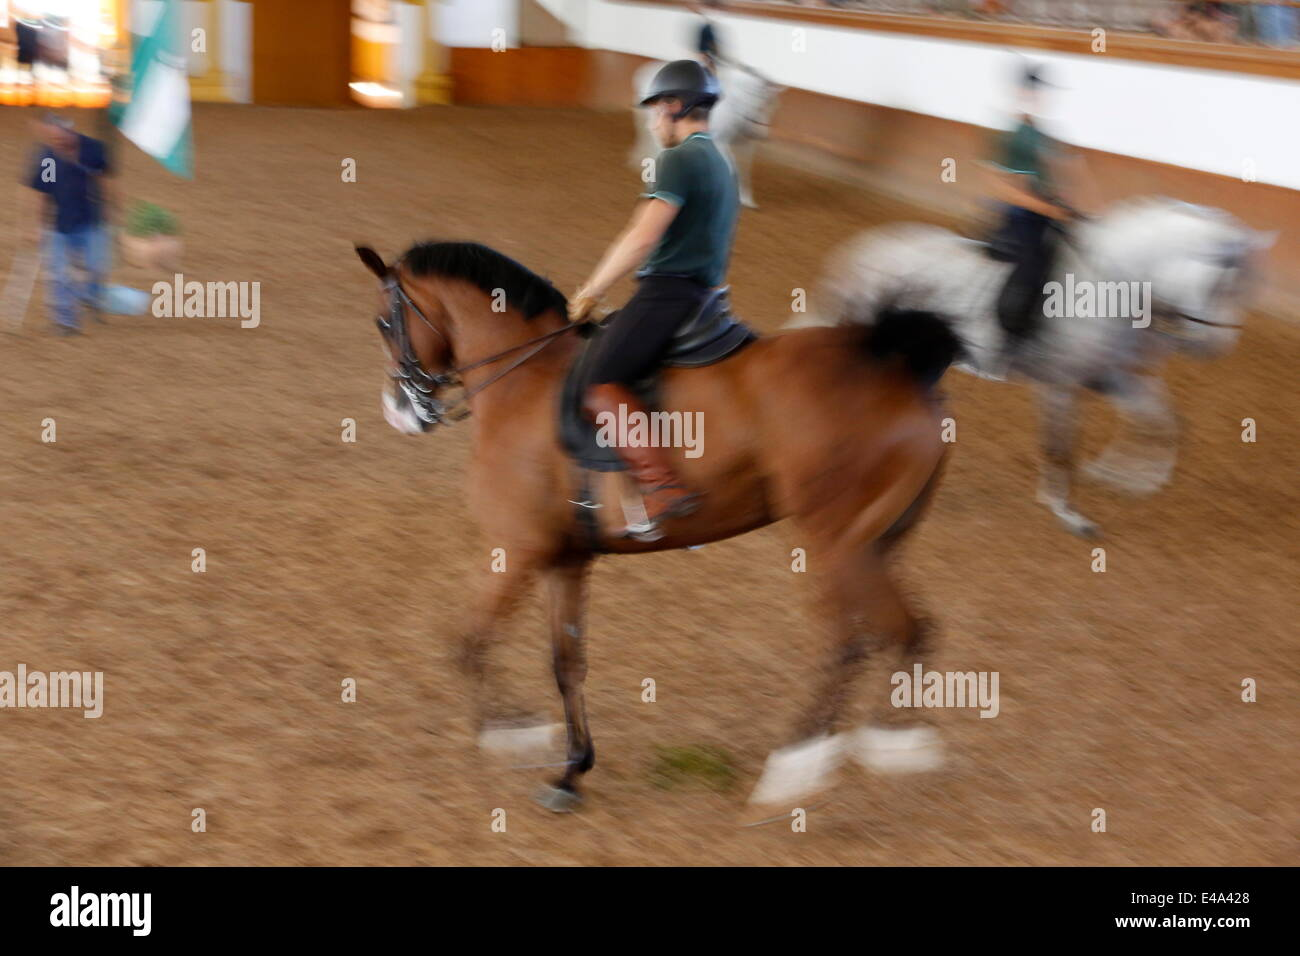 The Royal Andalusian School of Equestrian Art training, Jerez, Andalucia, Spain, Europe - Stock Image